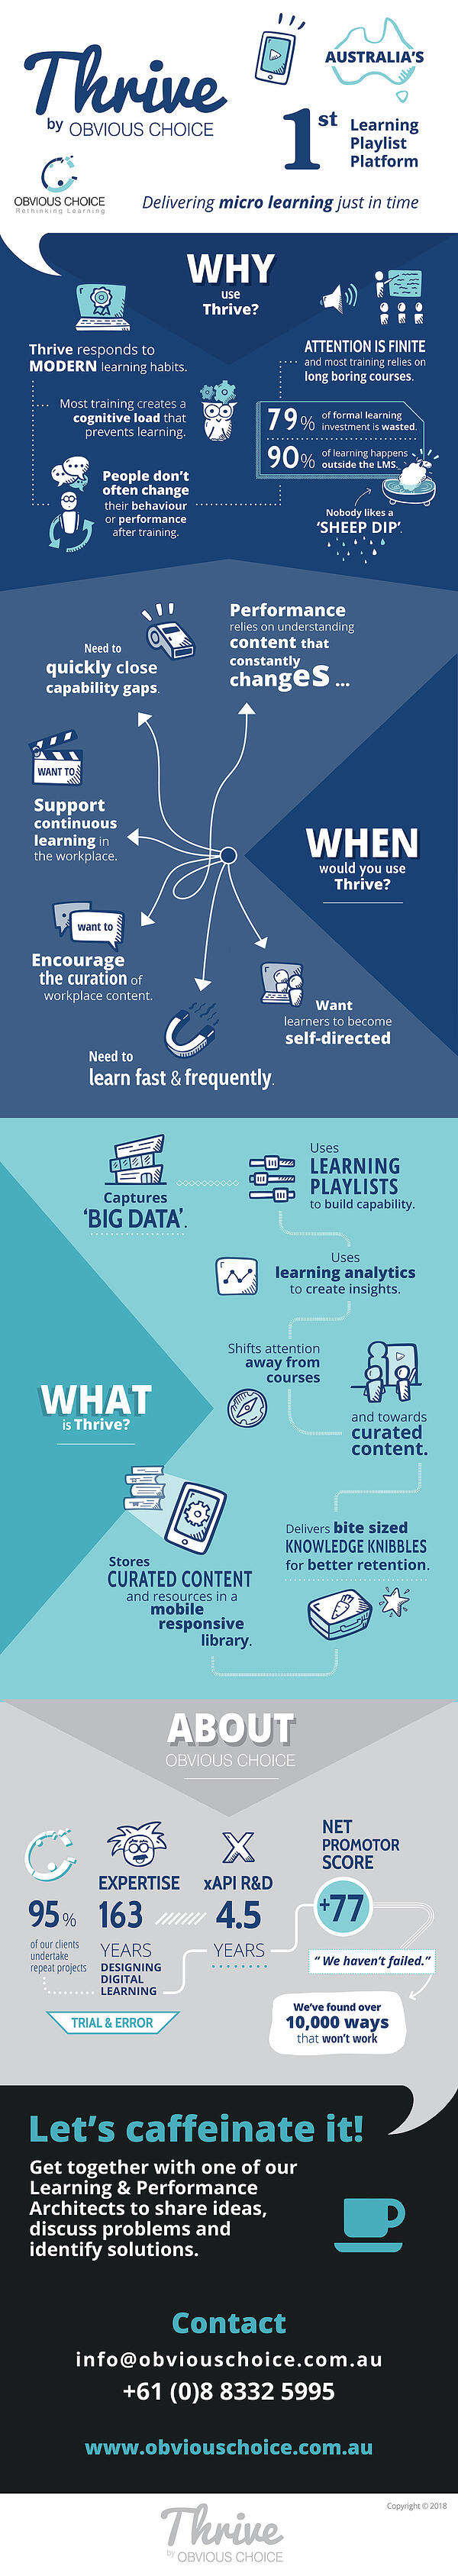 Thrive Learning Playlist Infographic